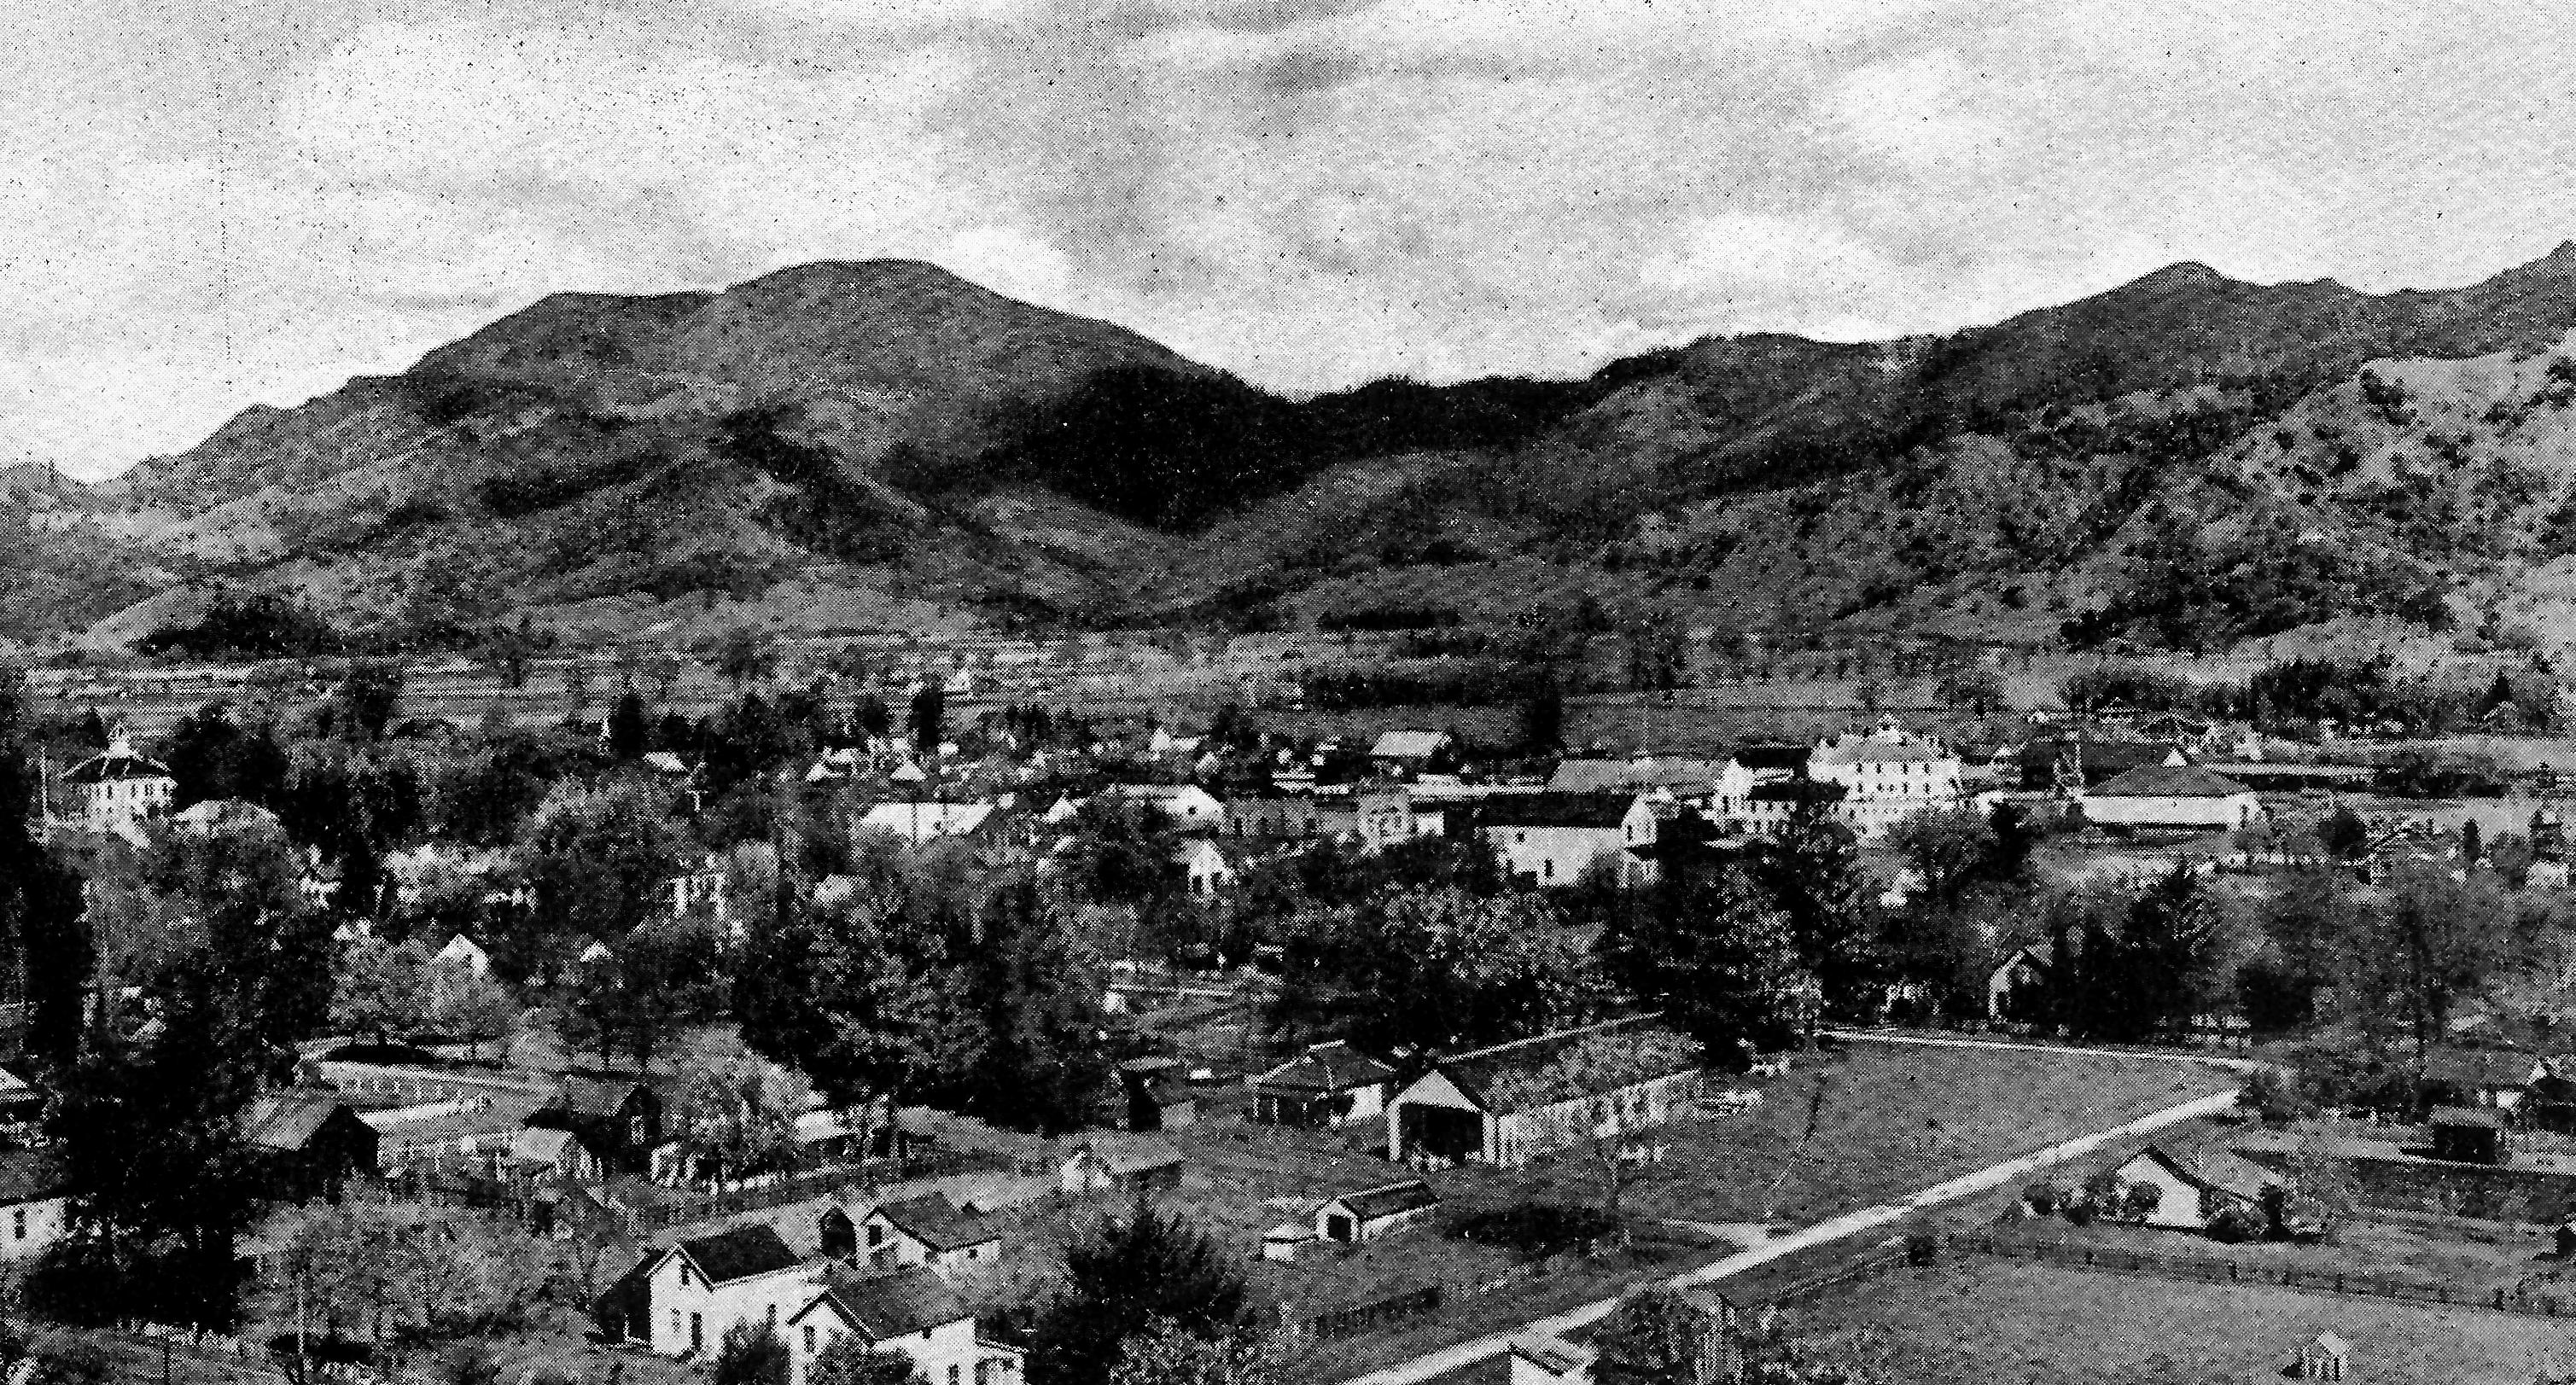 Calistoga Overview